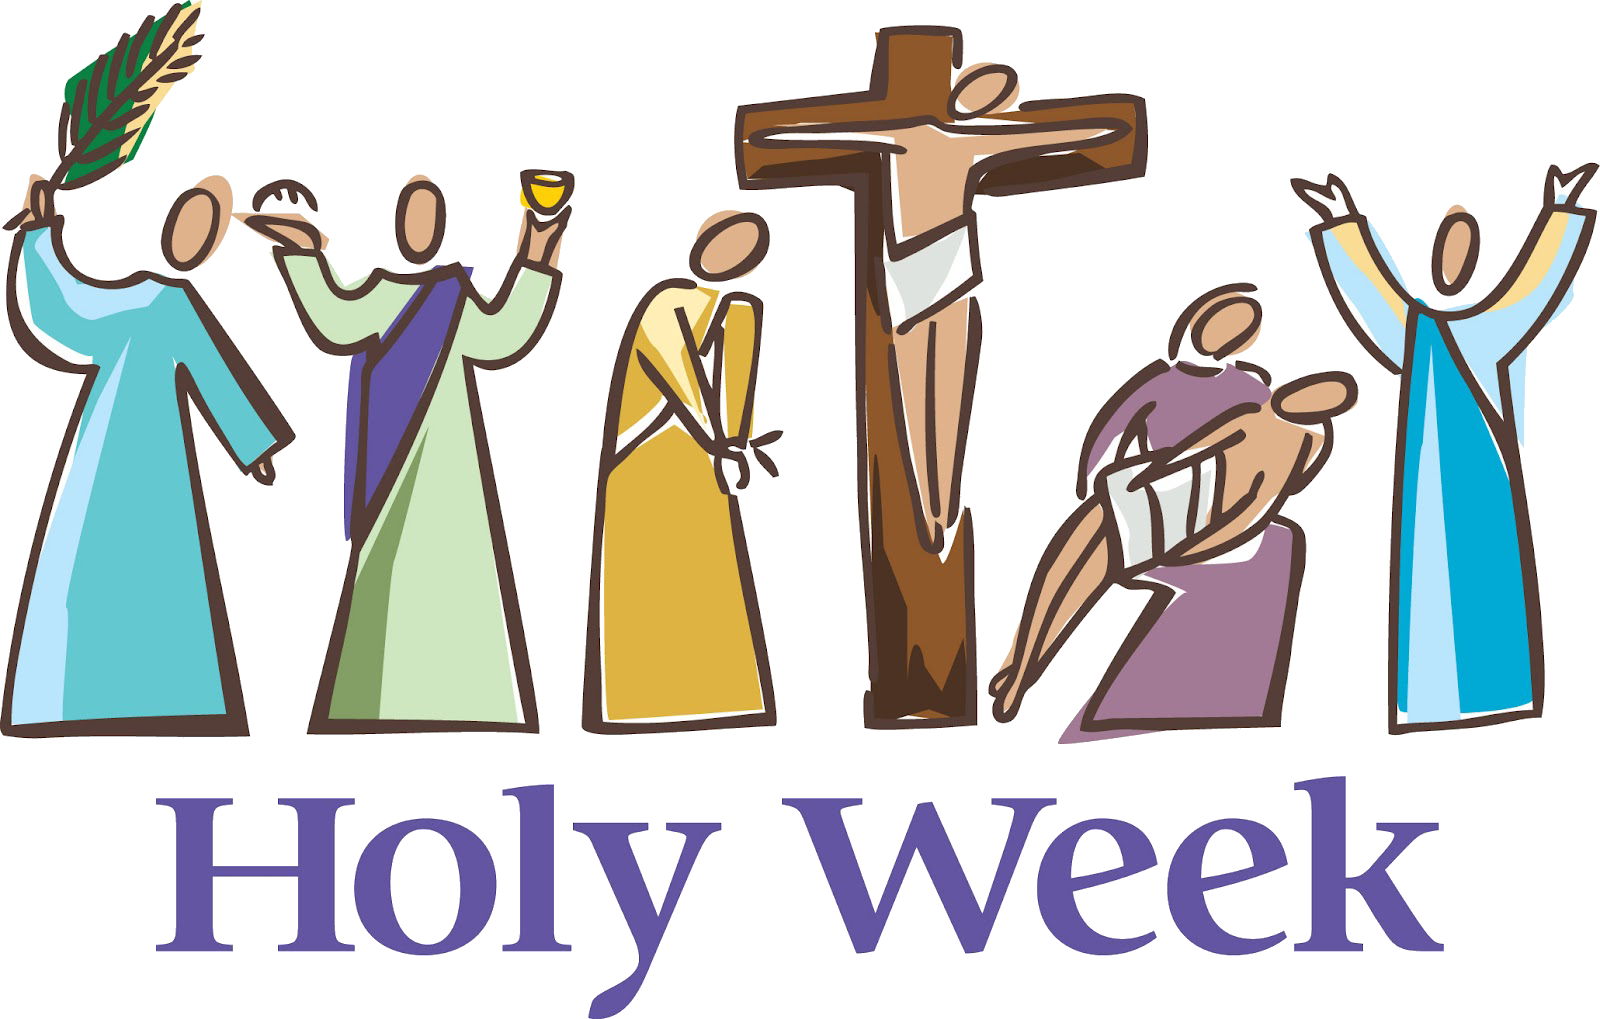 Holy week clipart jesus passion. Living water blessed a